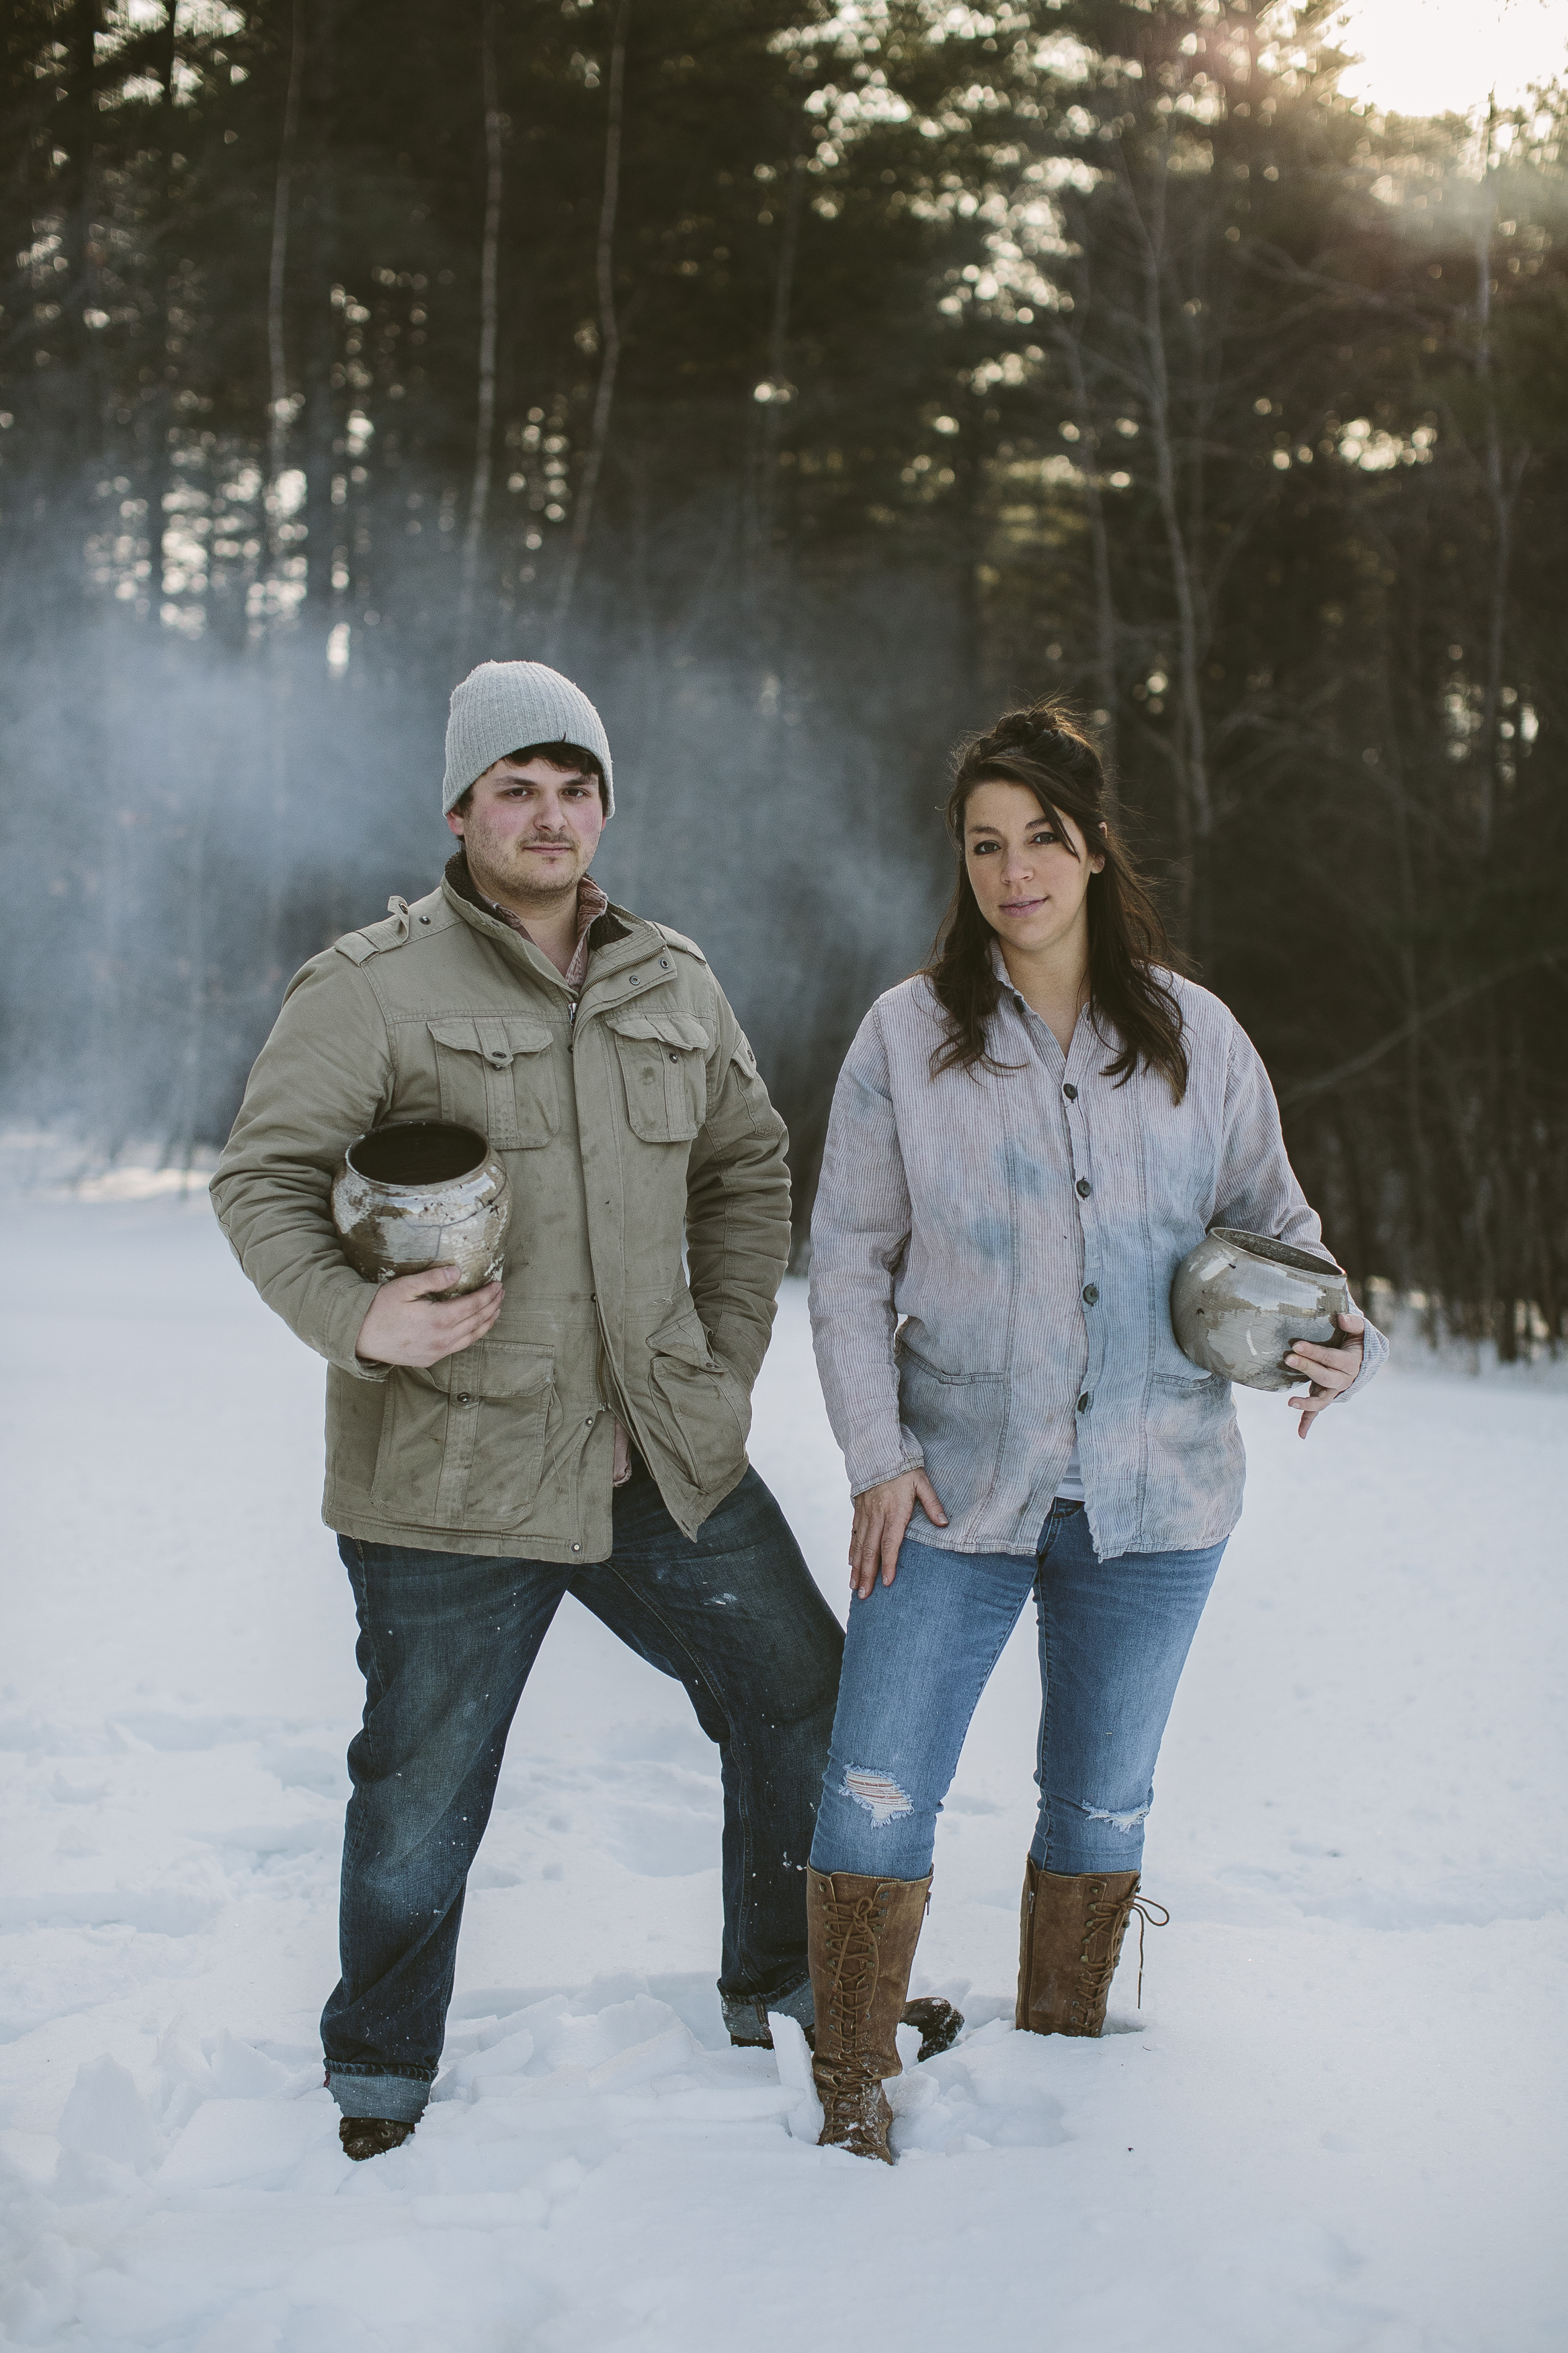 Campfire Studio owners Joe and Kristen Camp after a Raku firing in January in Maine, one week before Kristen gave birth to their daughter Florence. Girl power.